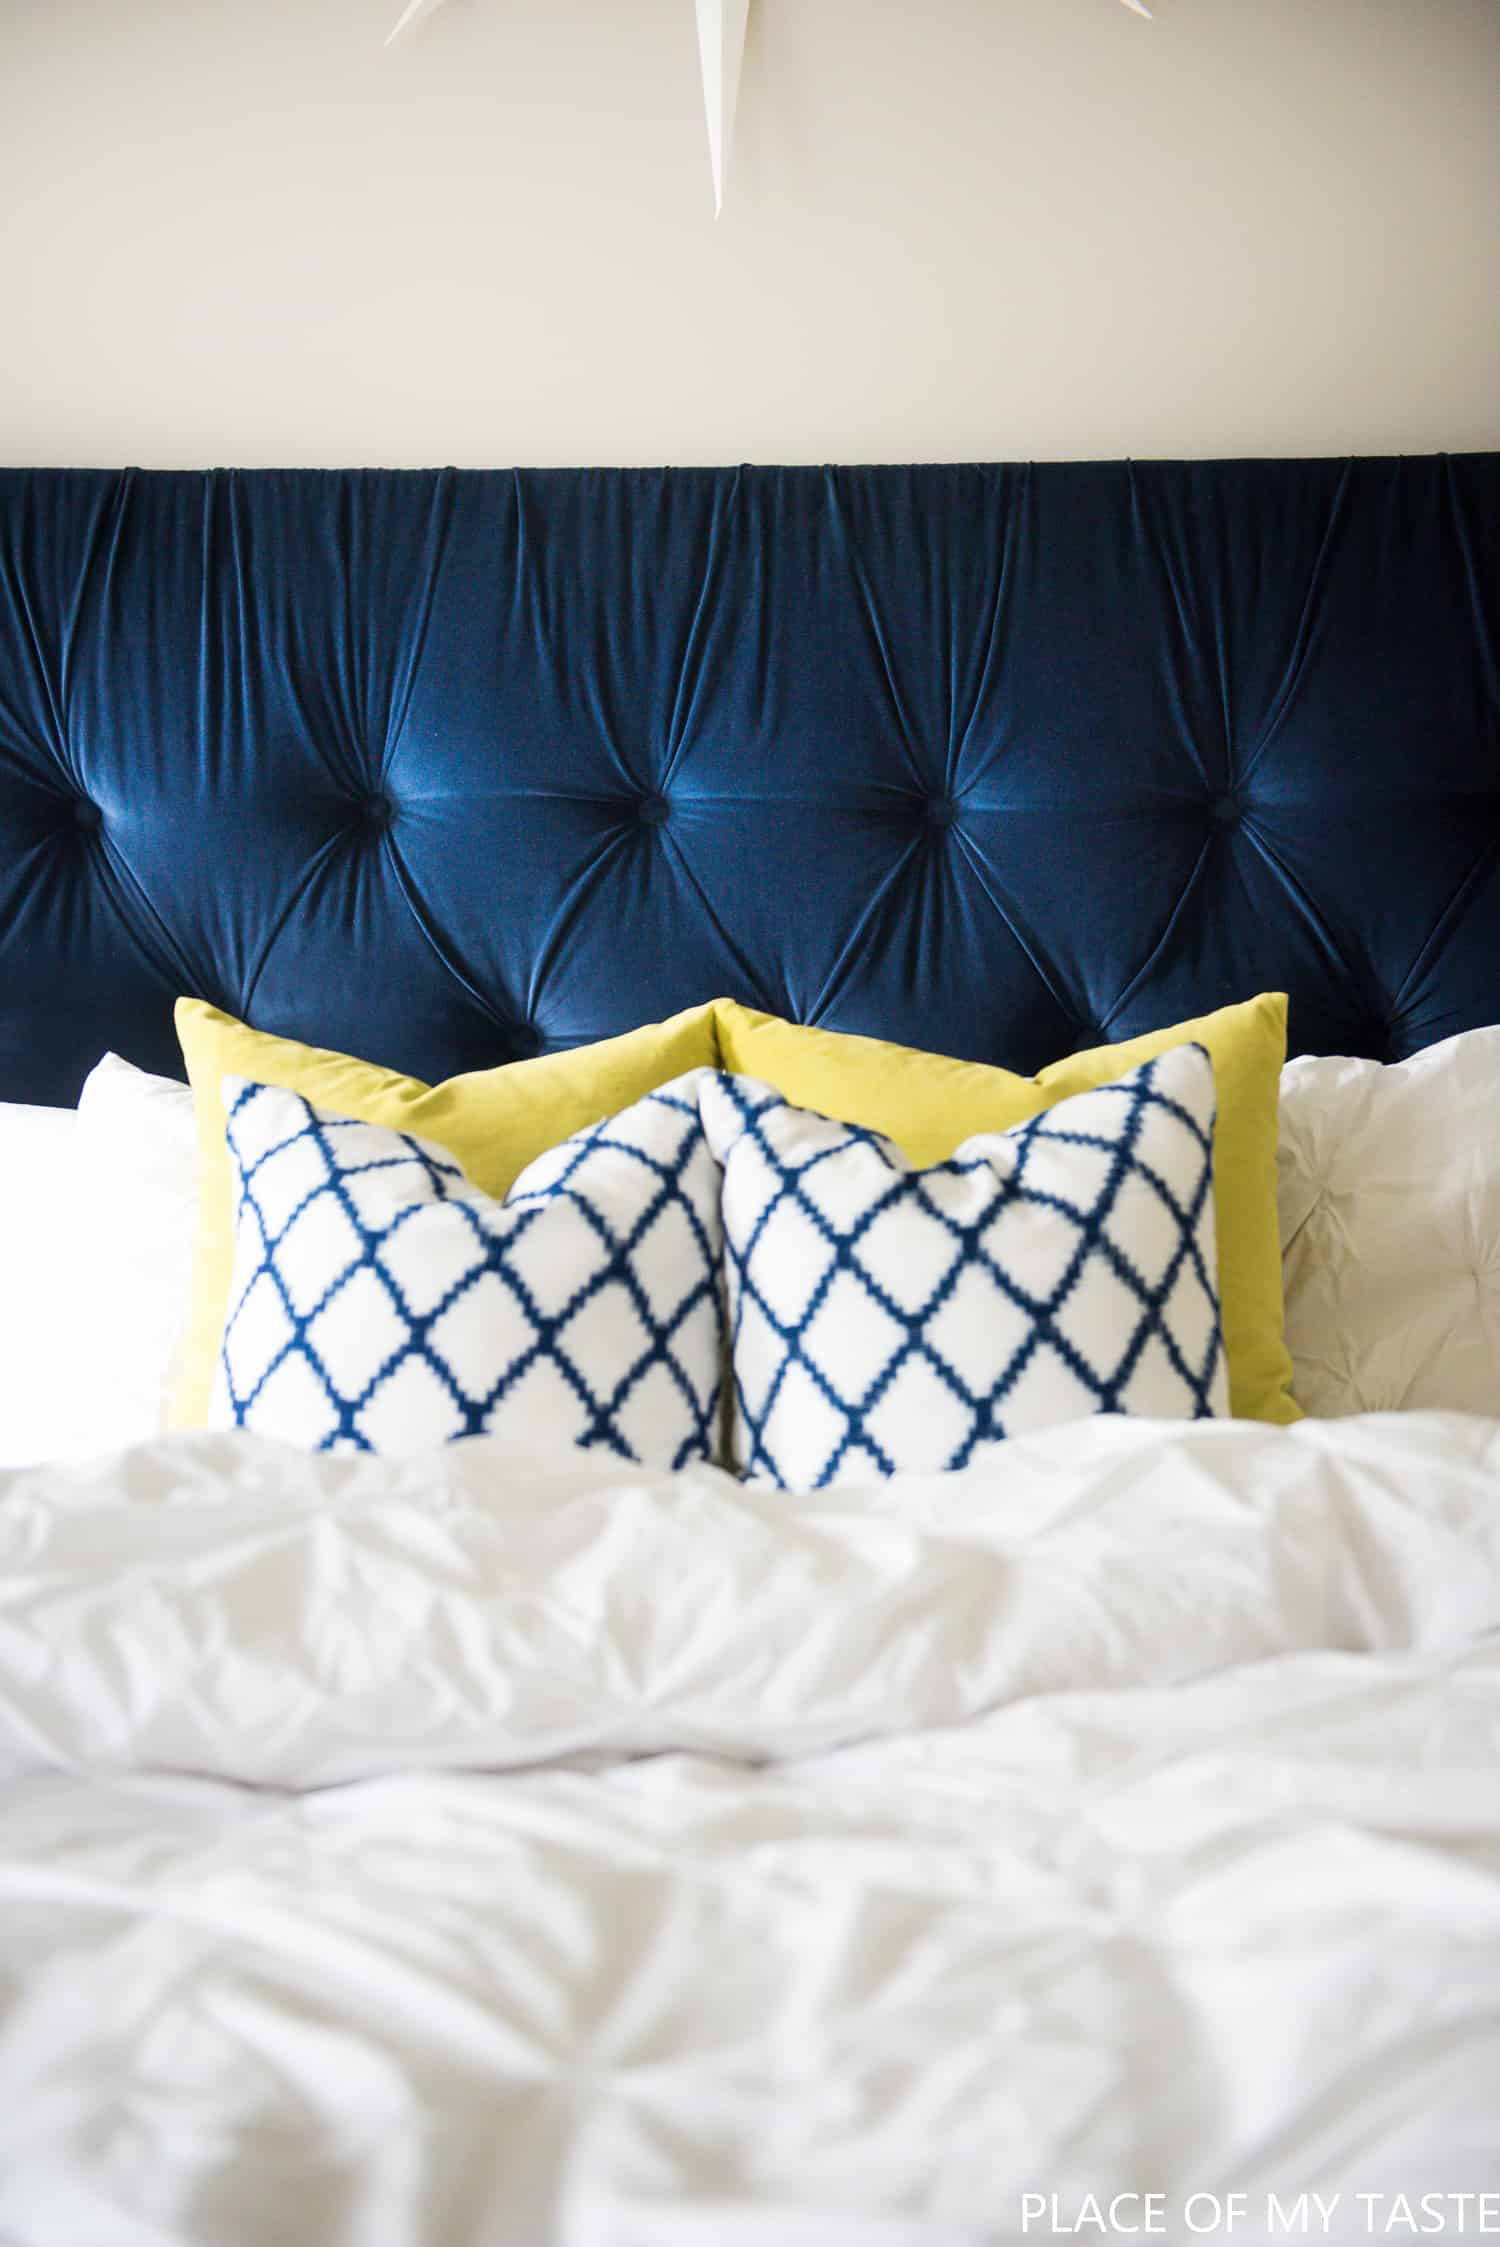 Tufted headboard   how to make it own your own tutorial tufted headboard  1 of 1  2